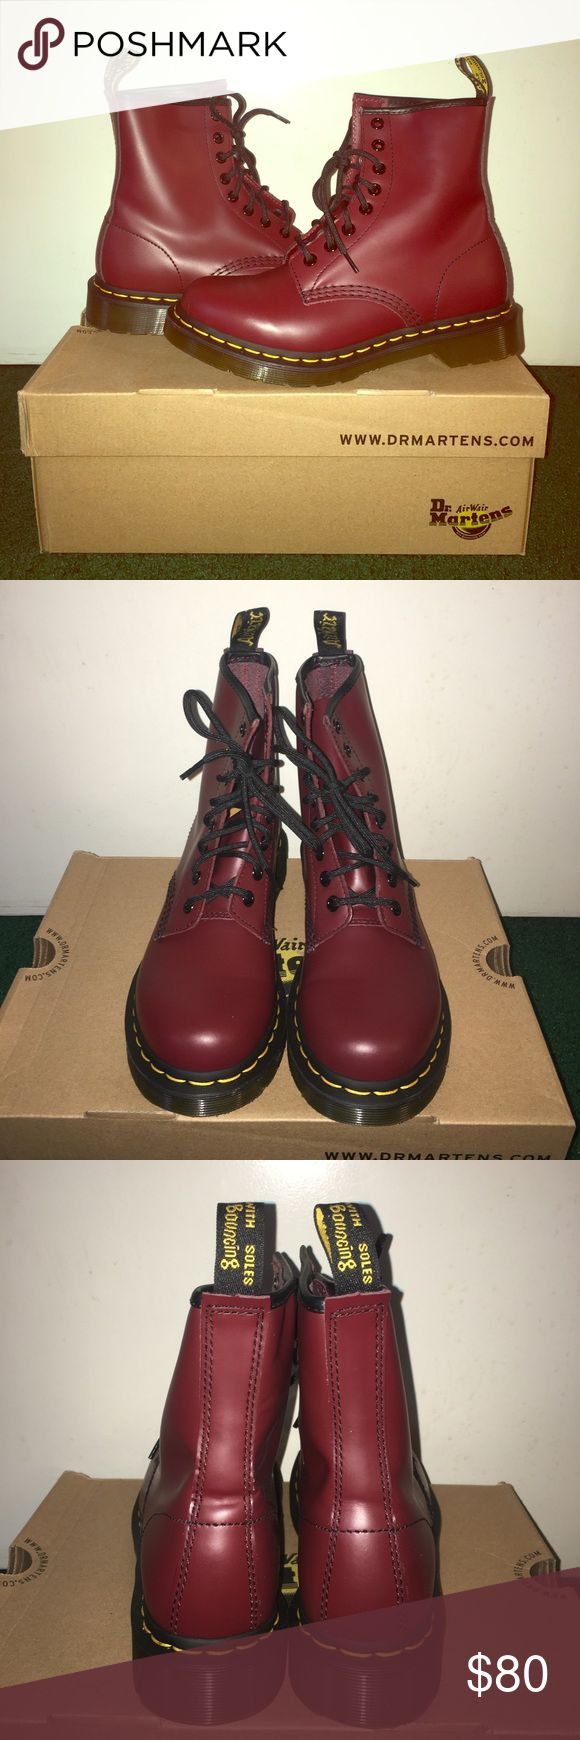 Dr. Martens Cherry Red Boots Women's 1460 W Dr. Martens. 8-eye, cherry red (burgundy). Size 6. I'm normally a 6.5 & these fit me comfortably. Comes with box, original insole inserts & additional yellow laces. Only been worn once or twice. Dr. Martens Shoes Combat & Moto Boots